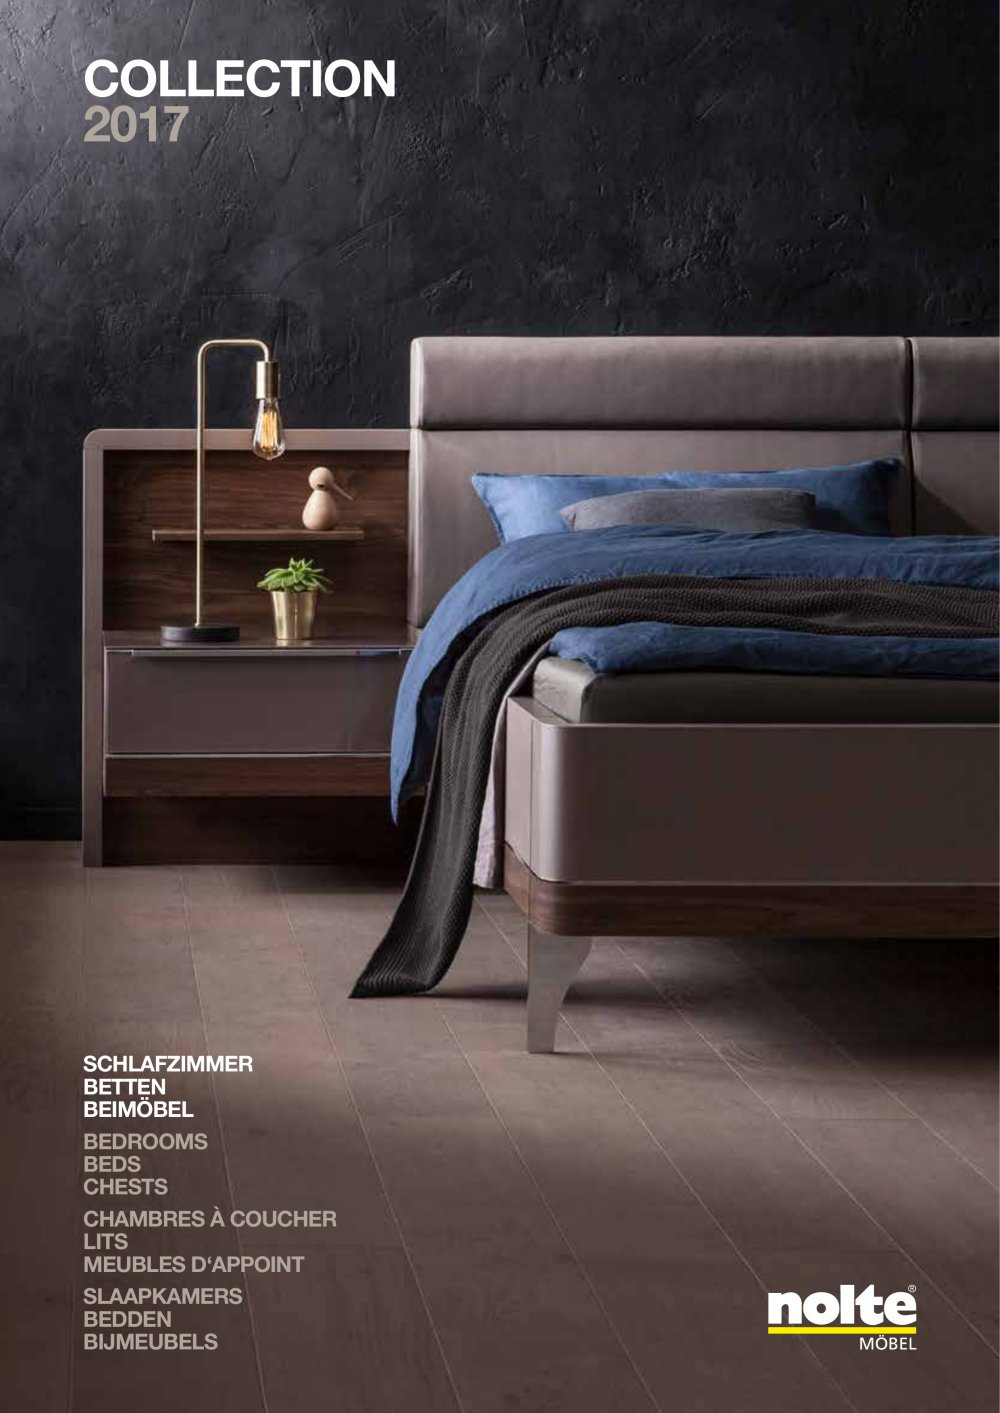 Chambre à Coucher Nolte Collection 2017 Bedrooms Beds Furniture Systems Nolte Pdf